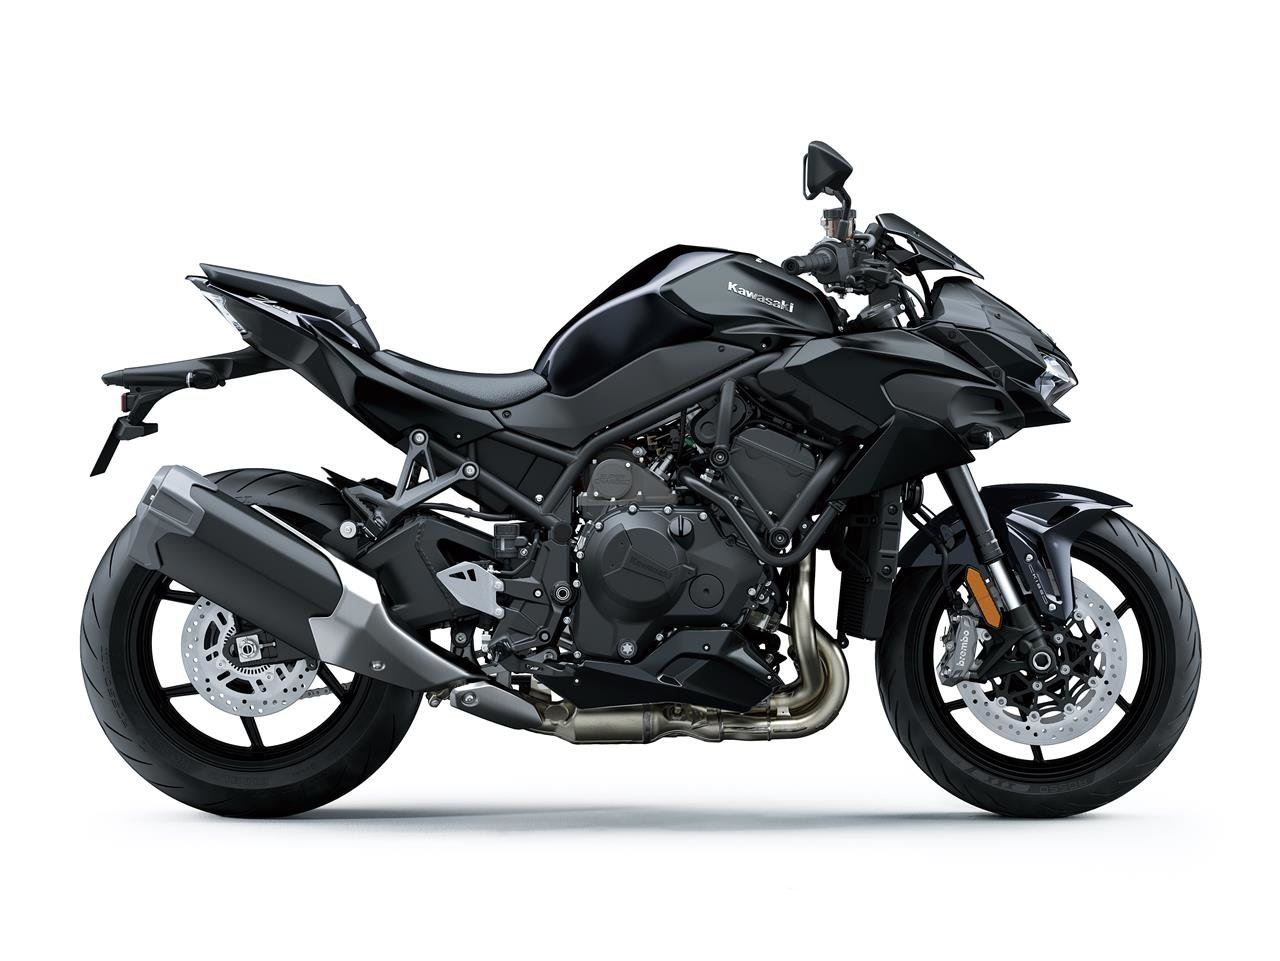 New 2020 Kawasaki Z H2 Supercharged Naked Z1000 For Sale (picture 2 of 6)